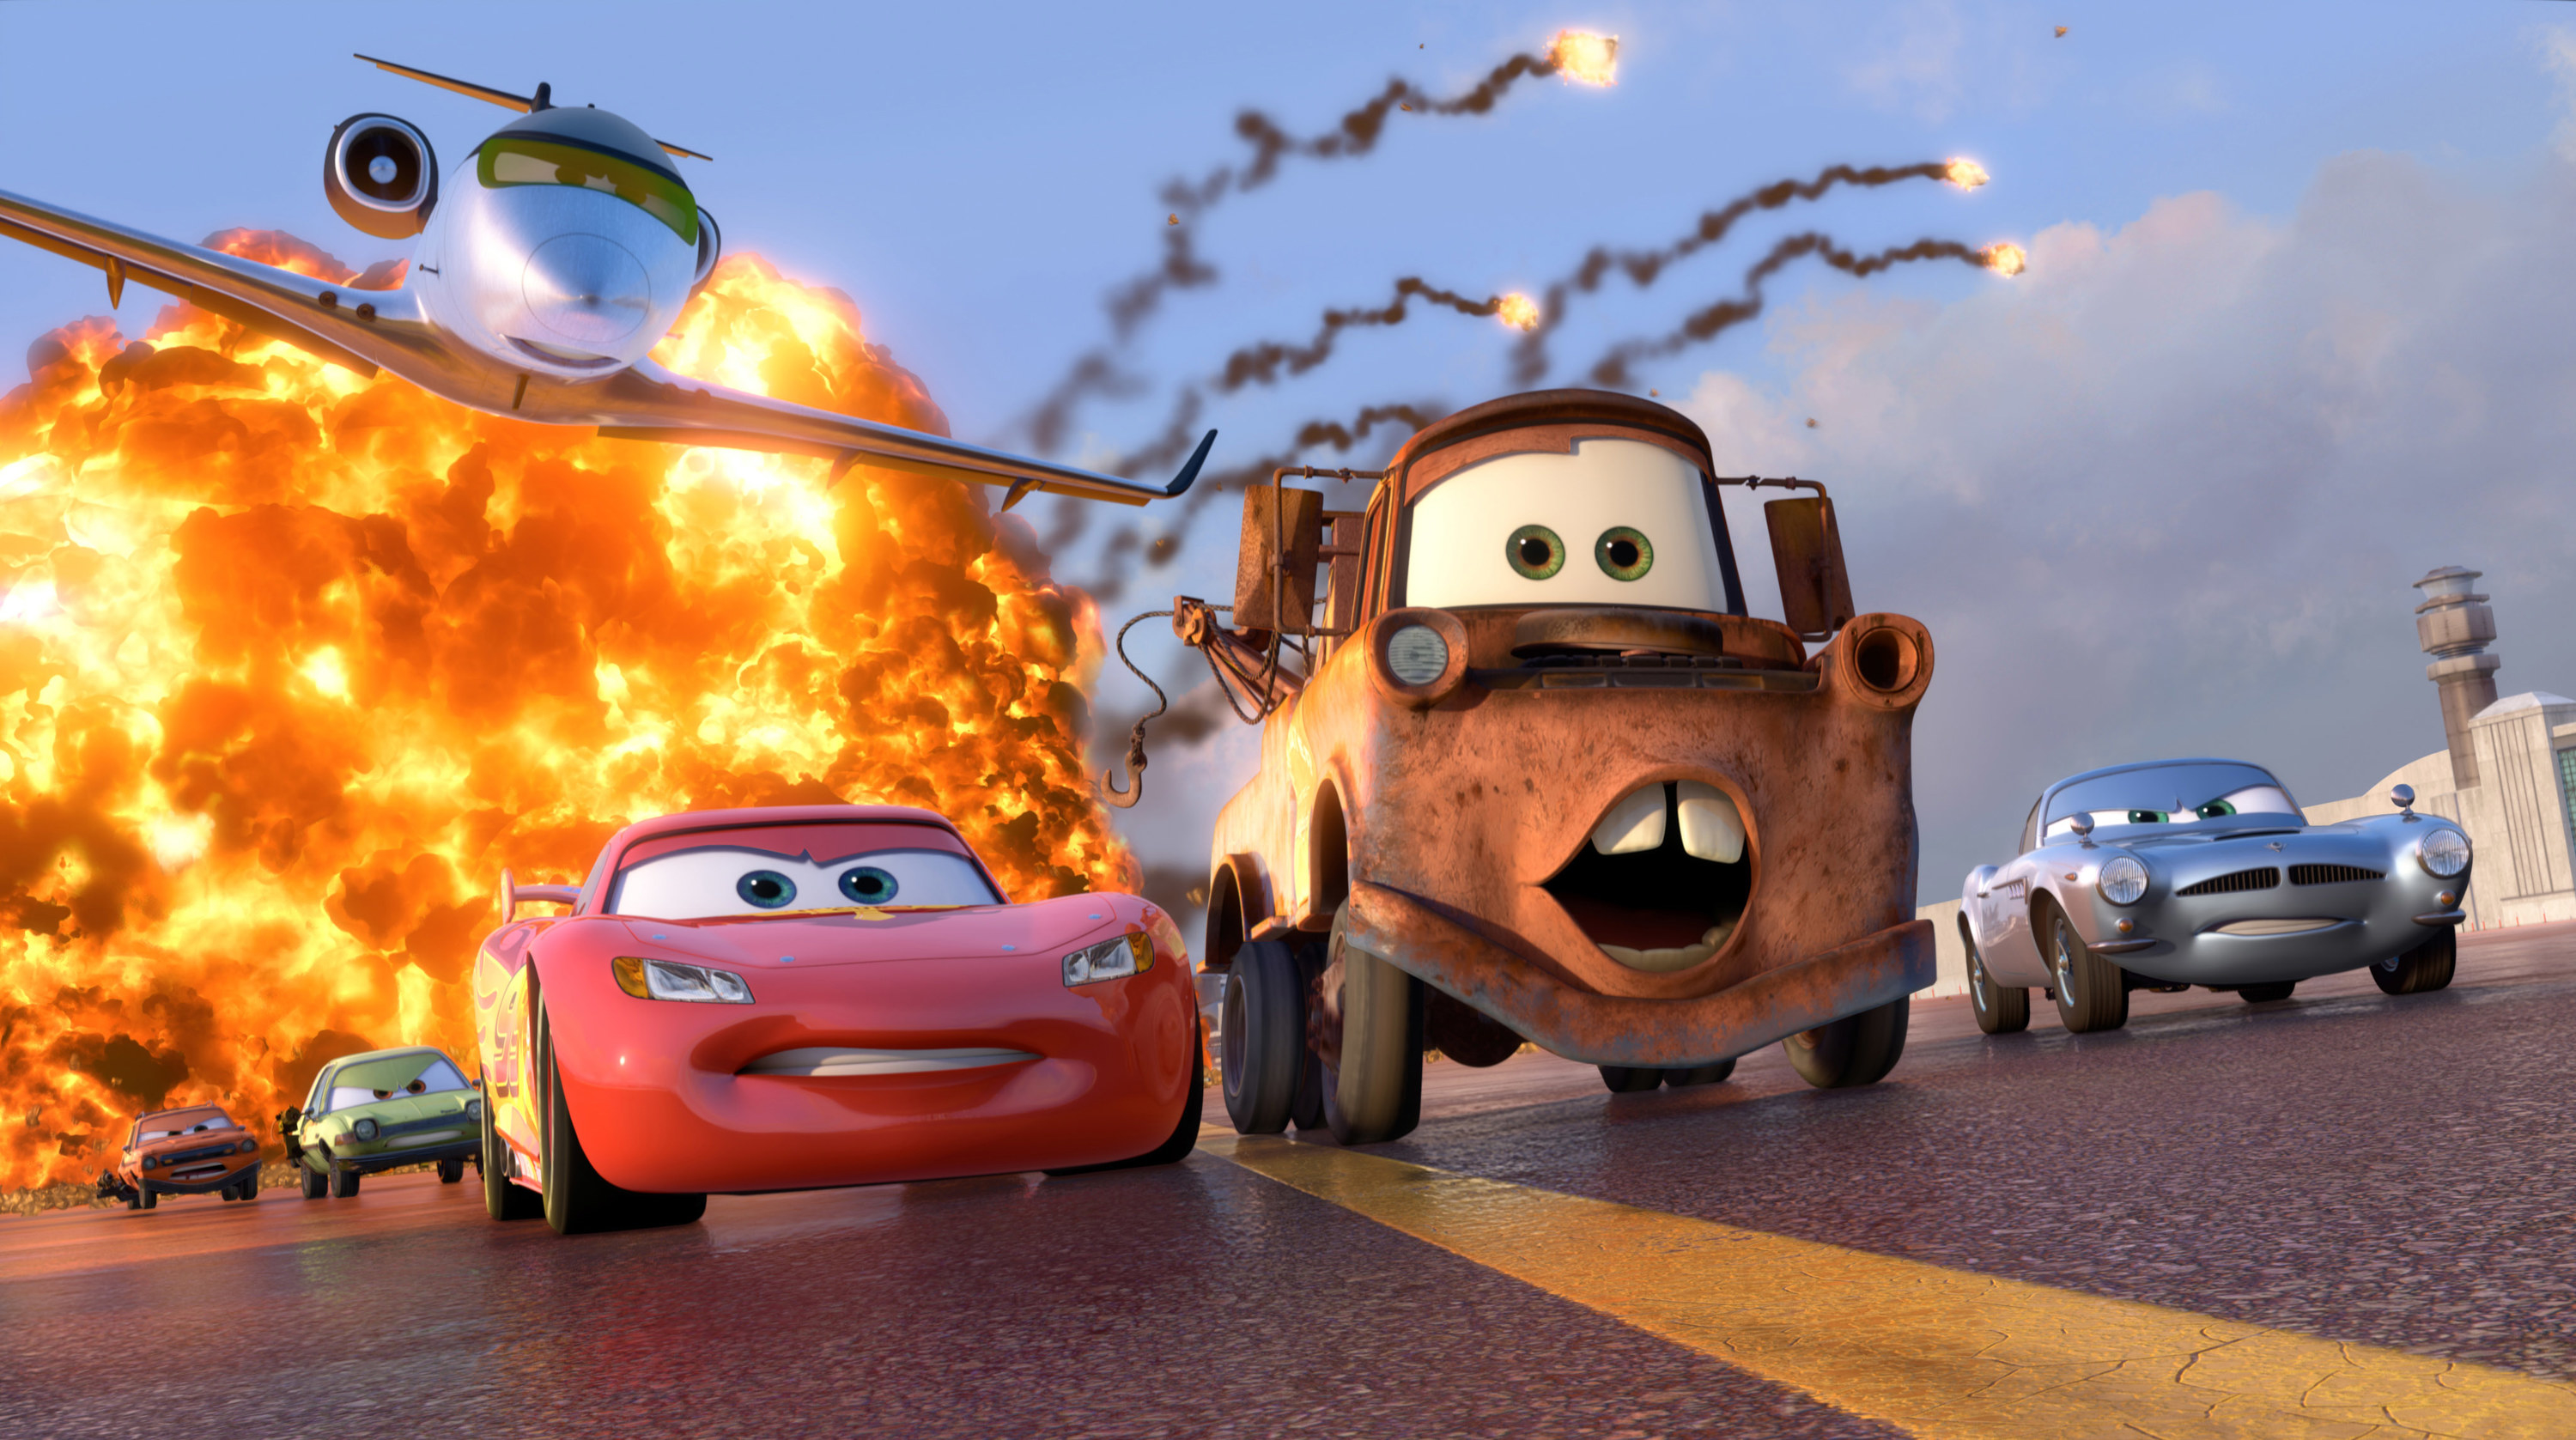 Grem, Acer, and Siddeley chasing Lightning McQueen, Mater, and Finn McMissile